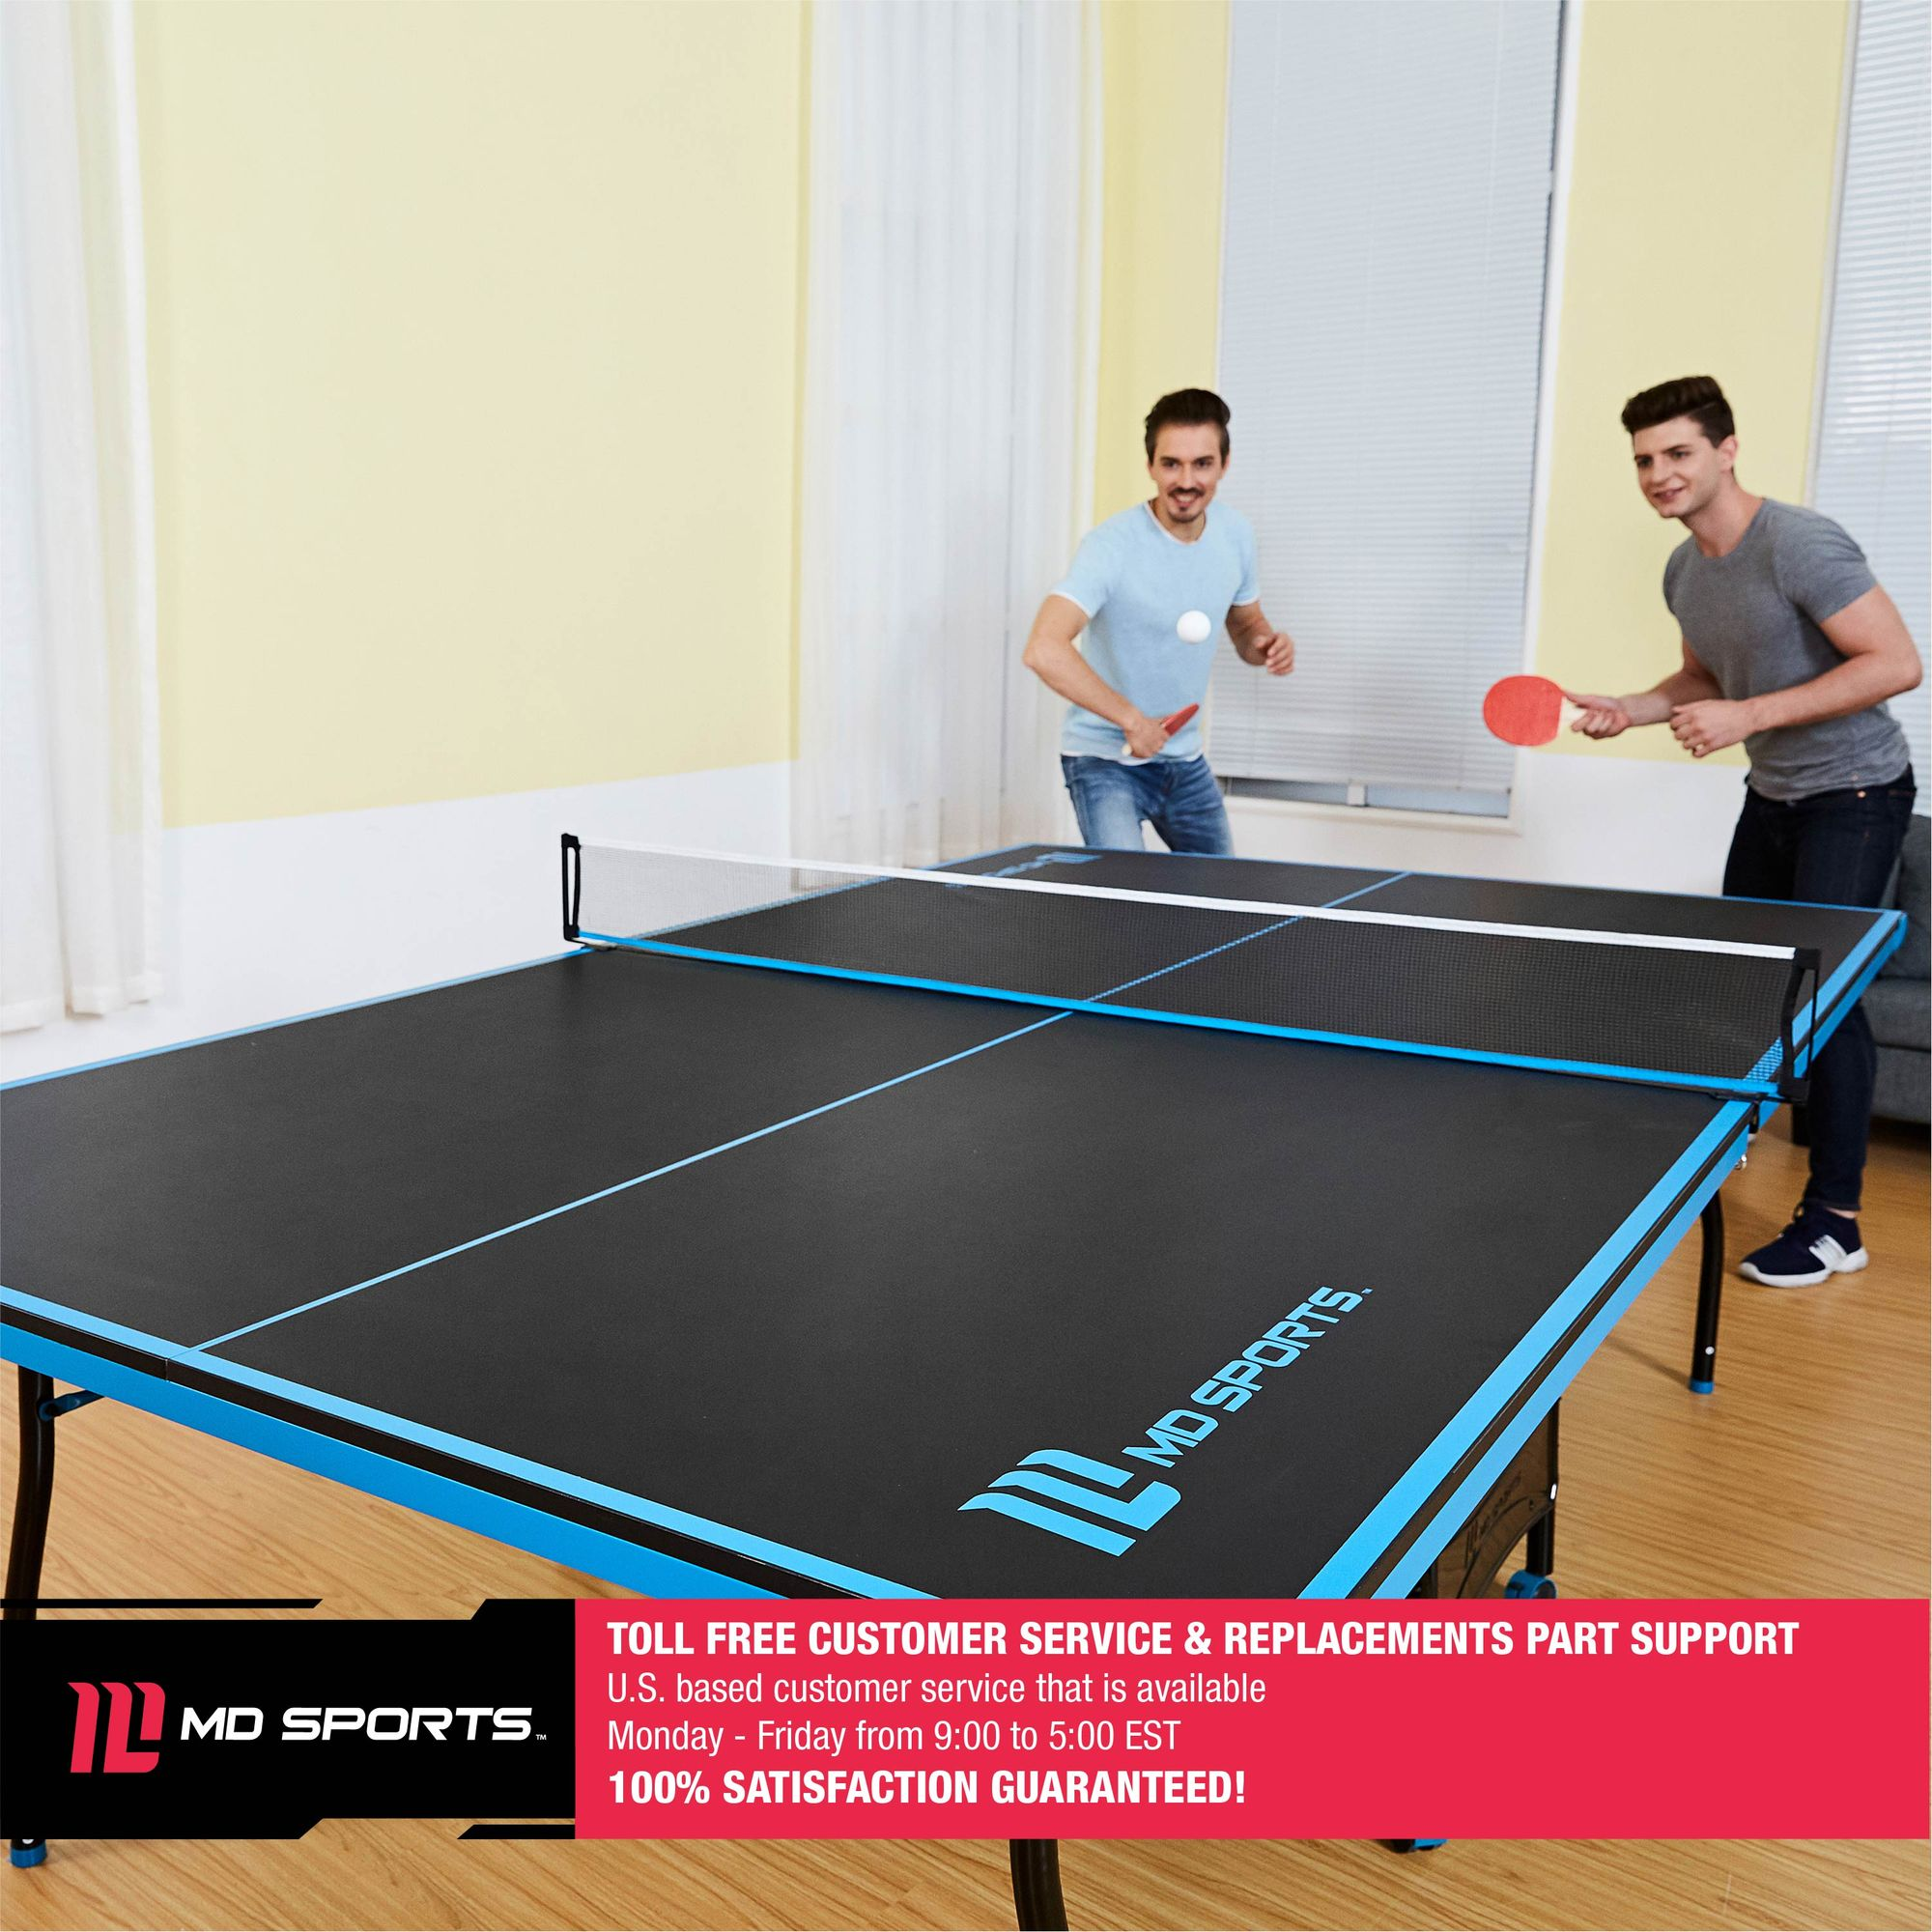 MD Sports Official Size Table Tennis Table, With Paddle And Balls,  Black/Blue   Walmart.com